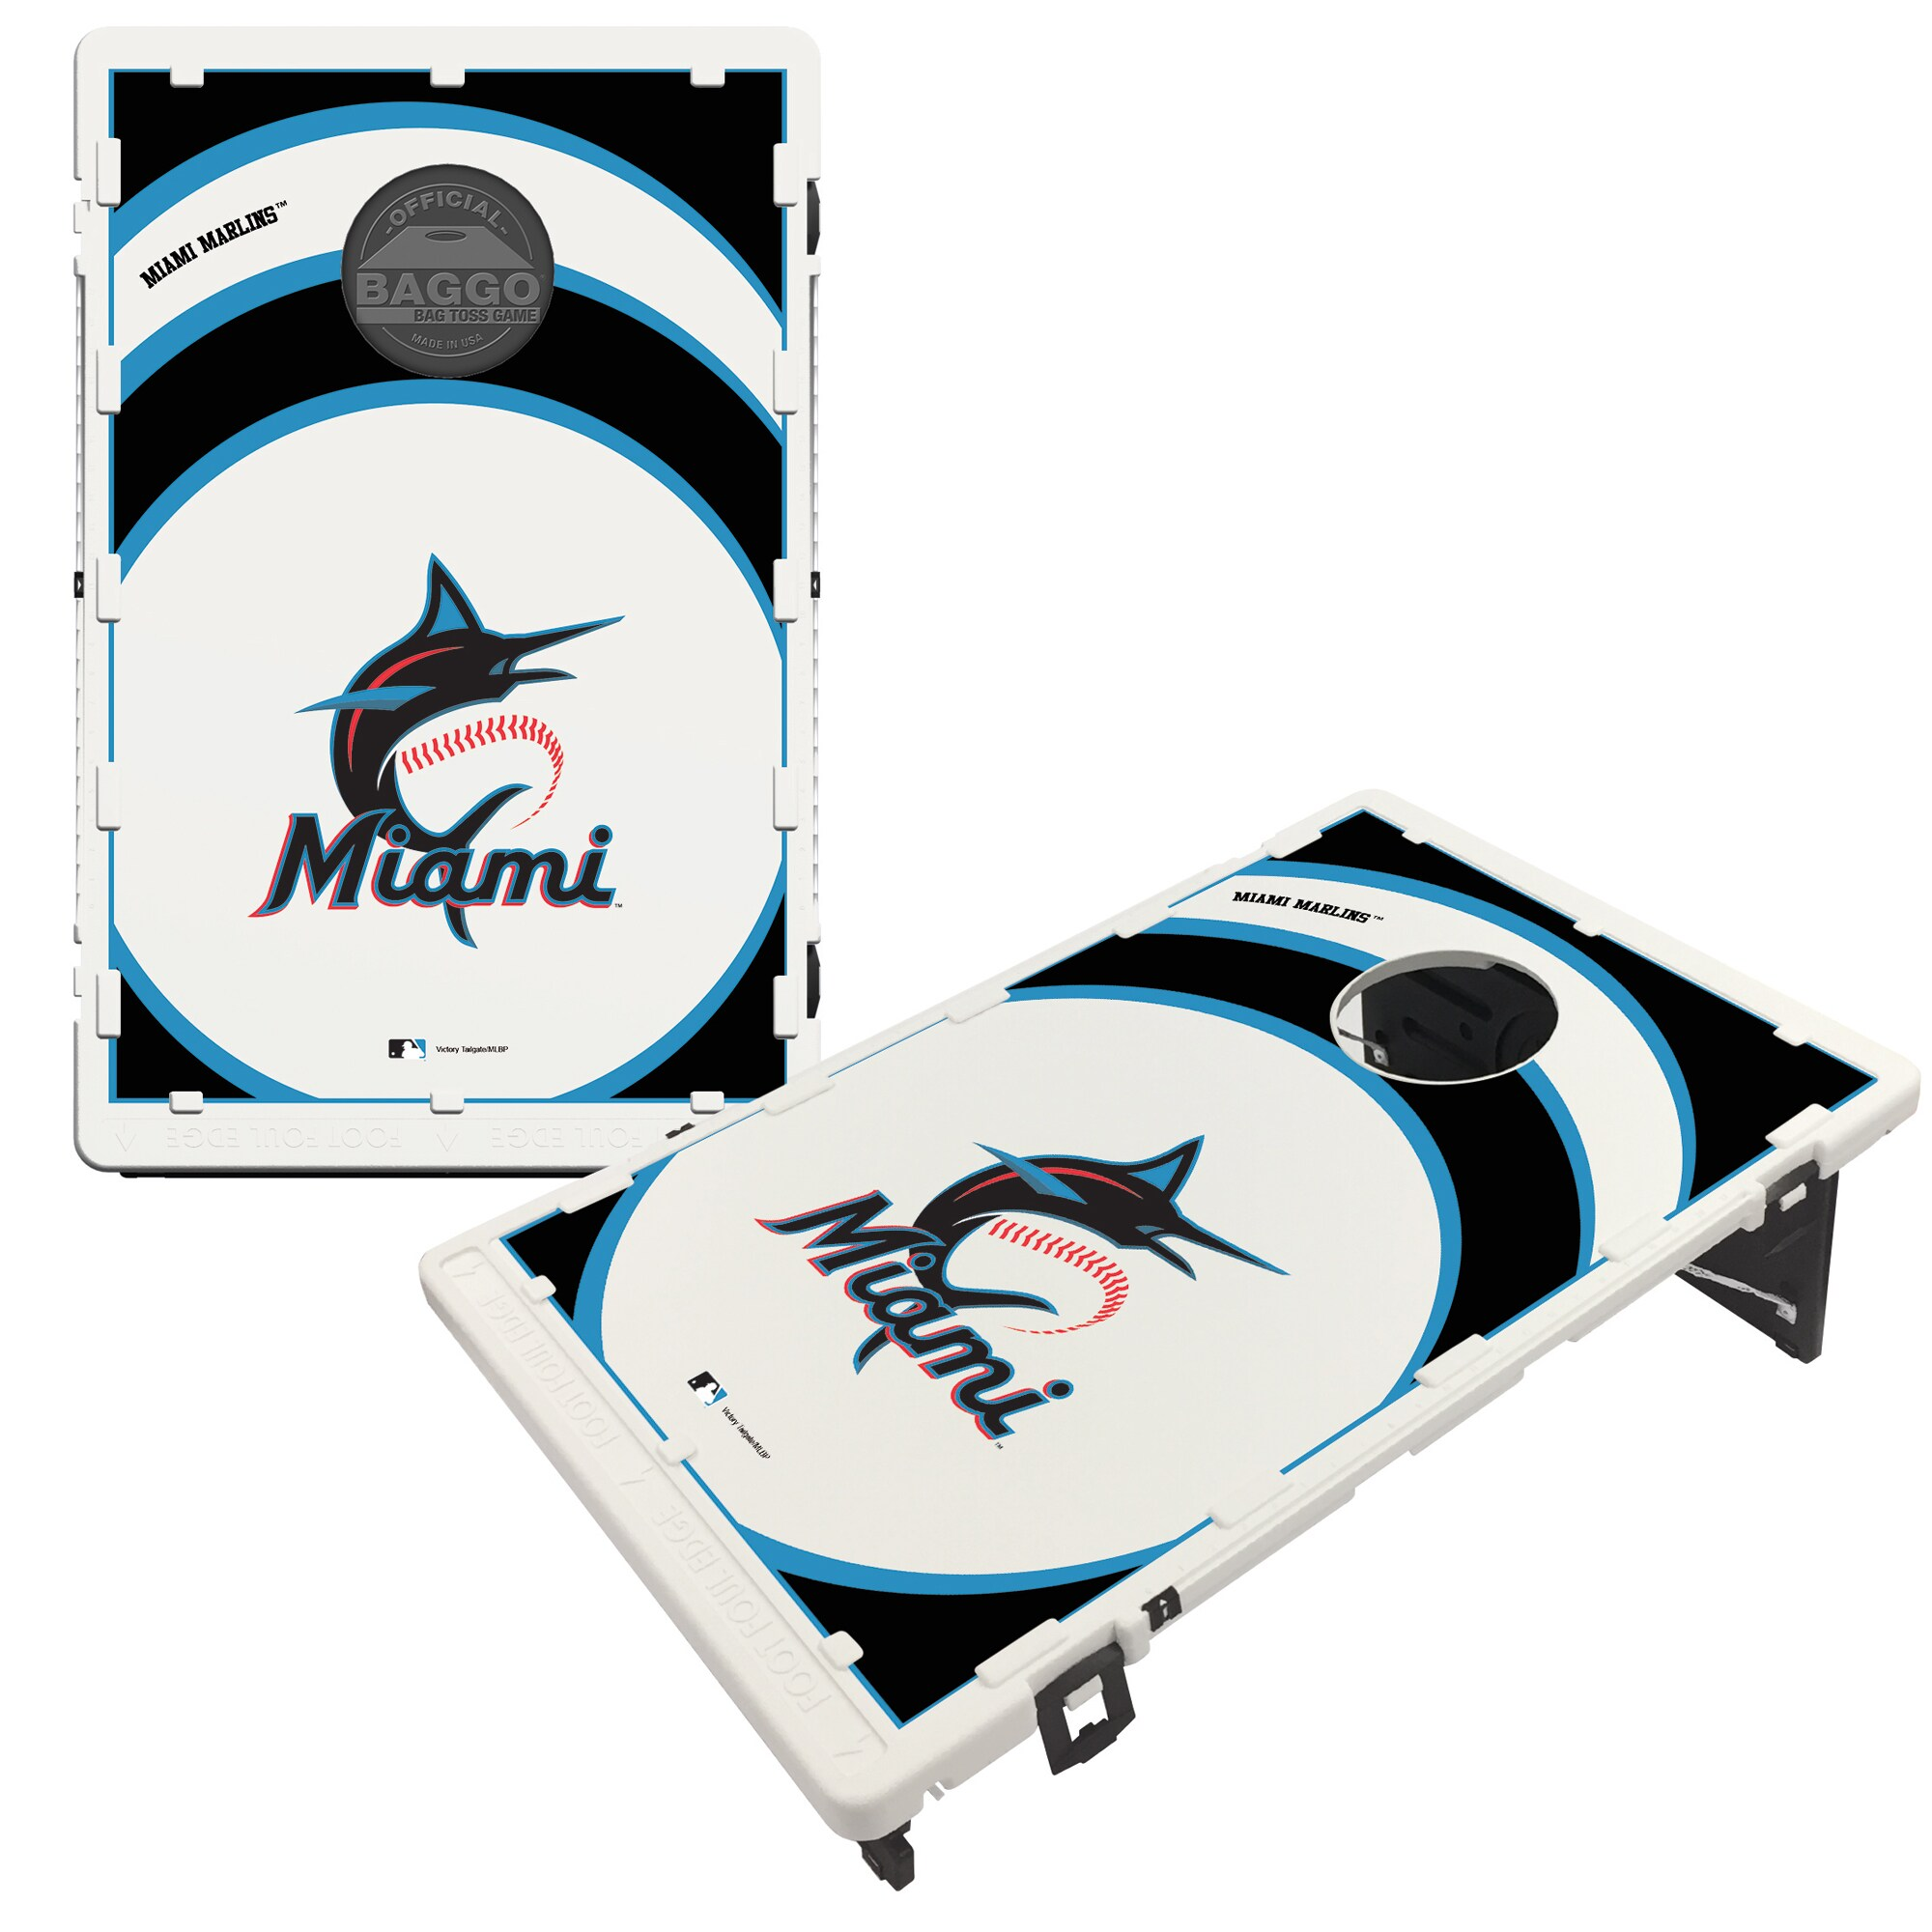 Miami Marlins 2' x 3' BAGGO Vortex Cornhole Board Tailgate Toss Set